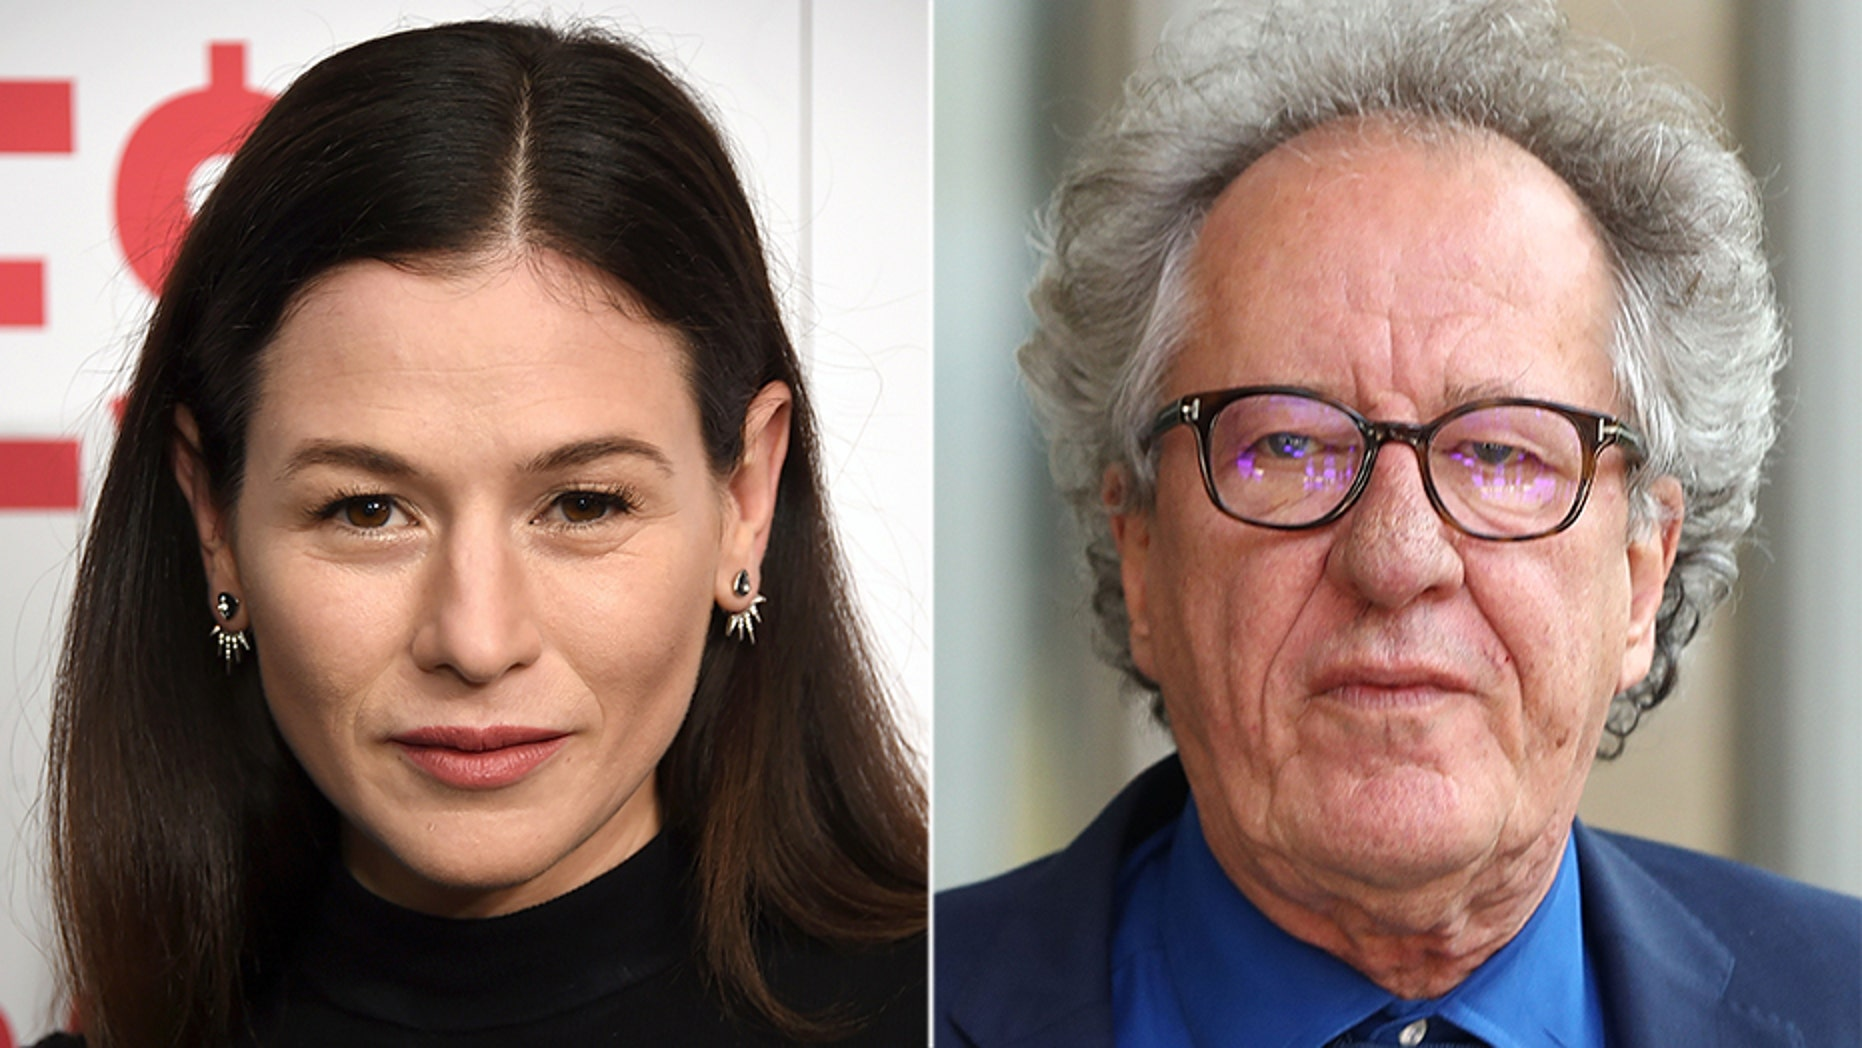 Yael Stone came forward with allegations of inappropriate behavior against Geoffrey Rush.